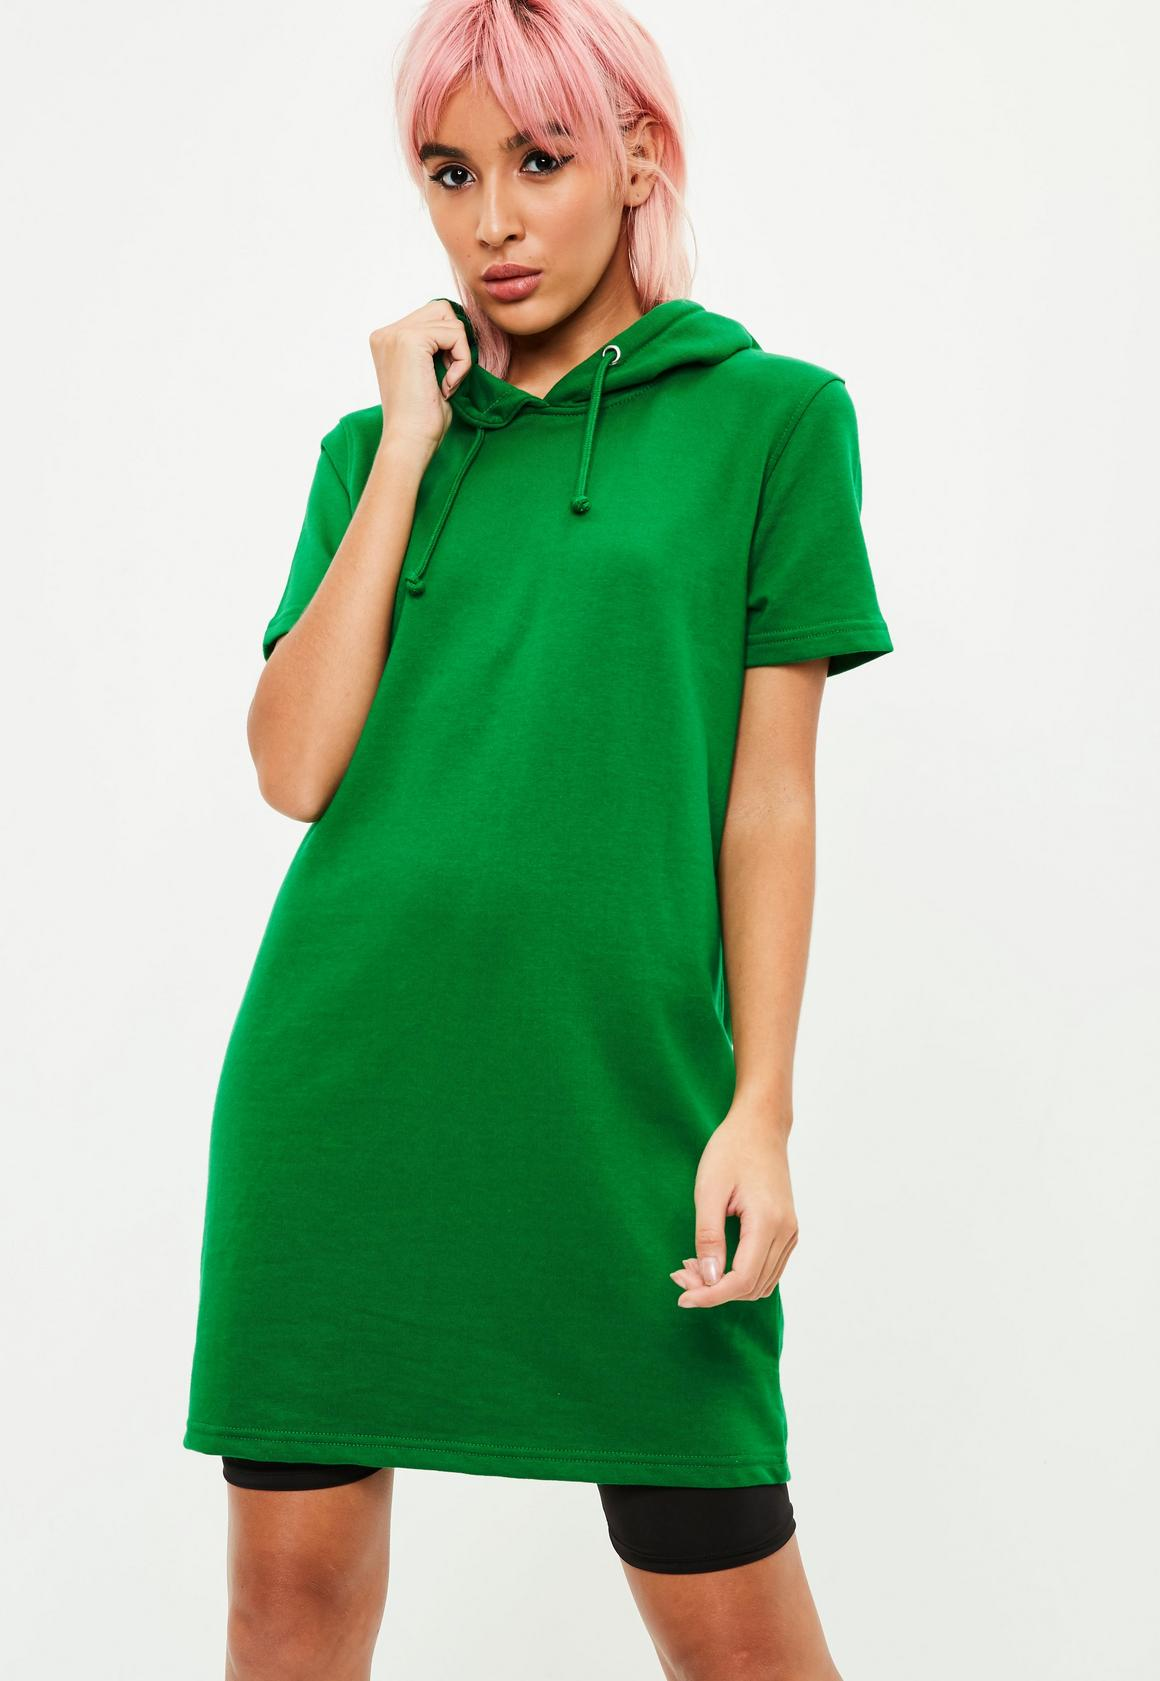 Green Short Sleeve Hooded Sweater Dress | Missguided Ireland